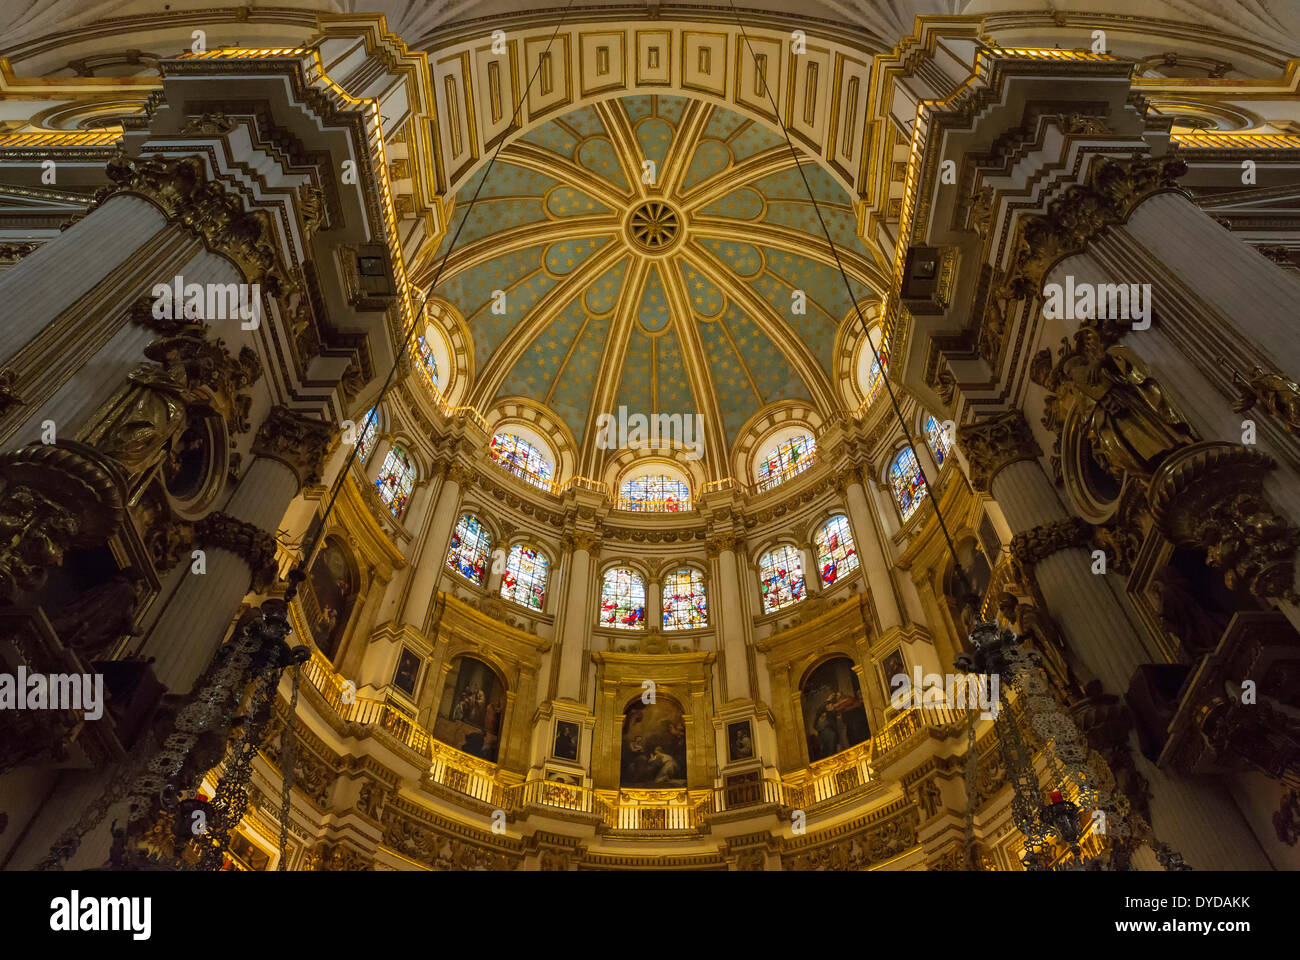 Central dome of the Cathedral in Granada, Granada province, Andalusia, Spain Stock Photo